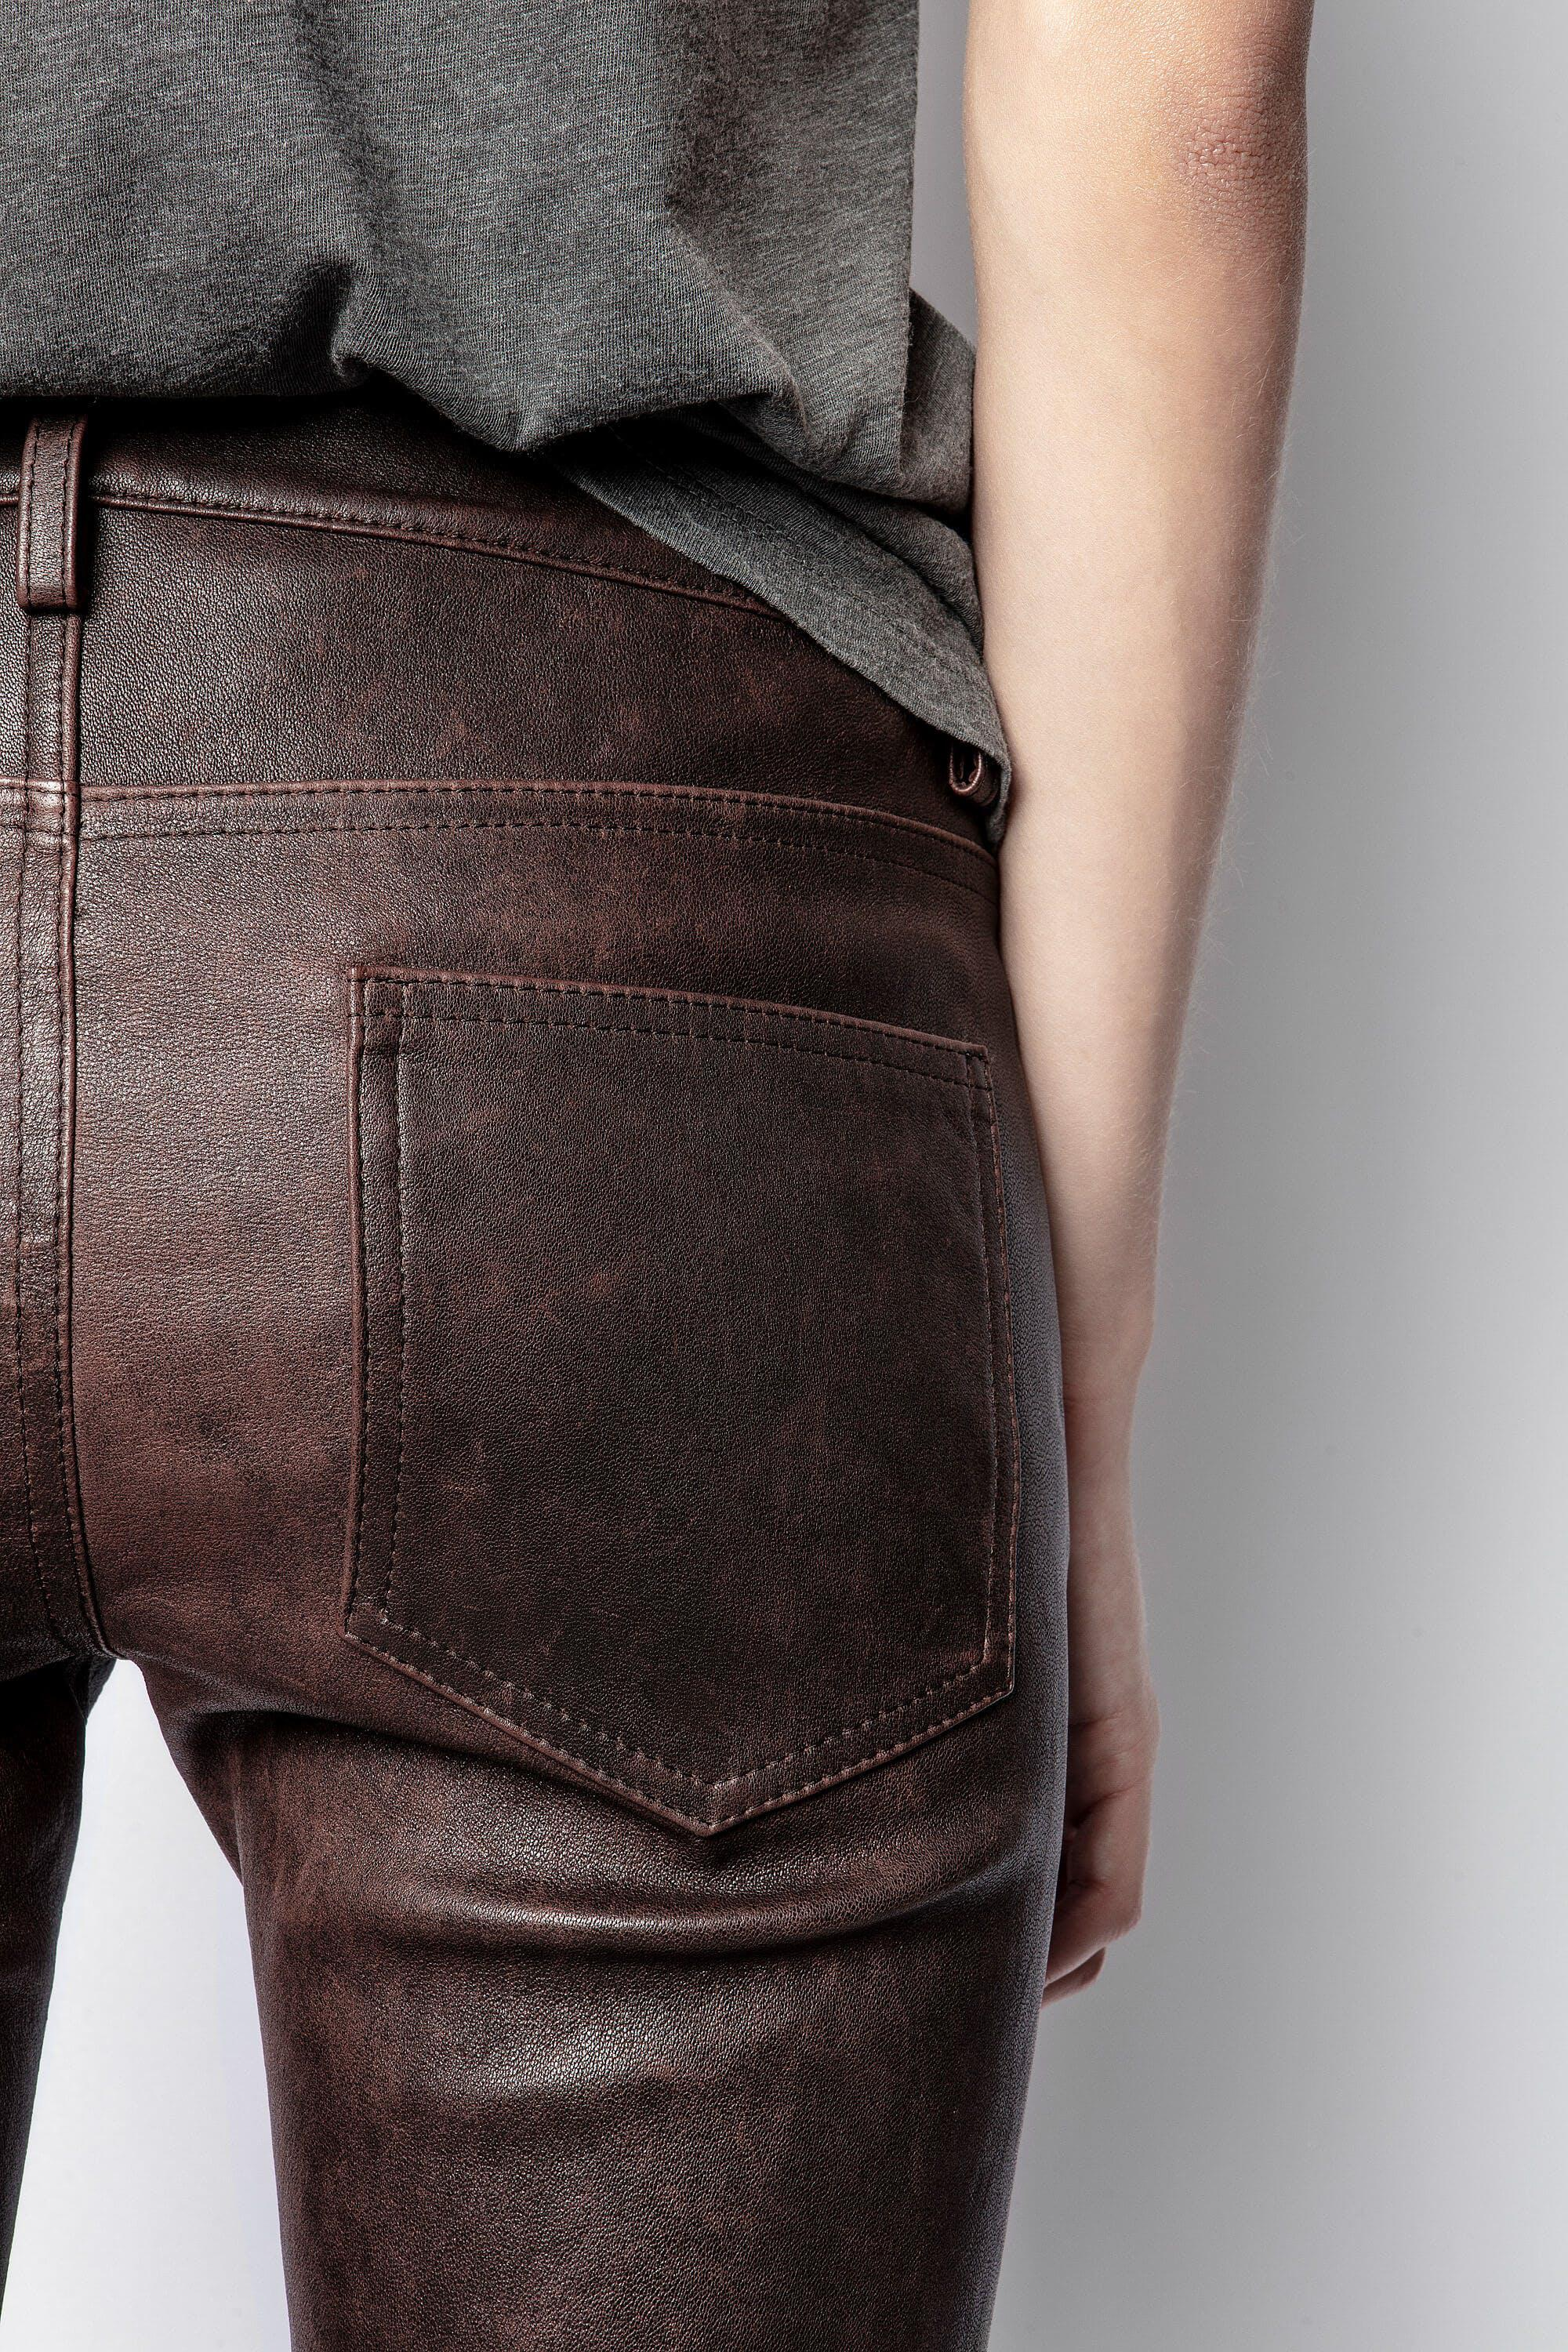 Phlame Leather Used Pants 4